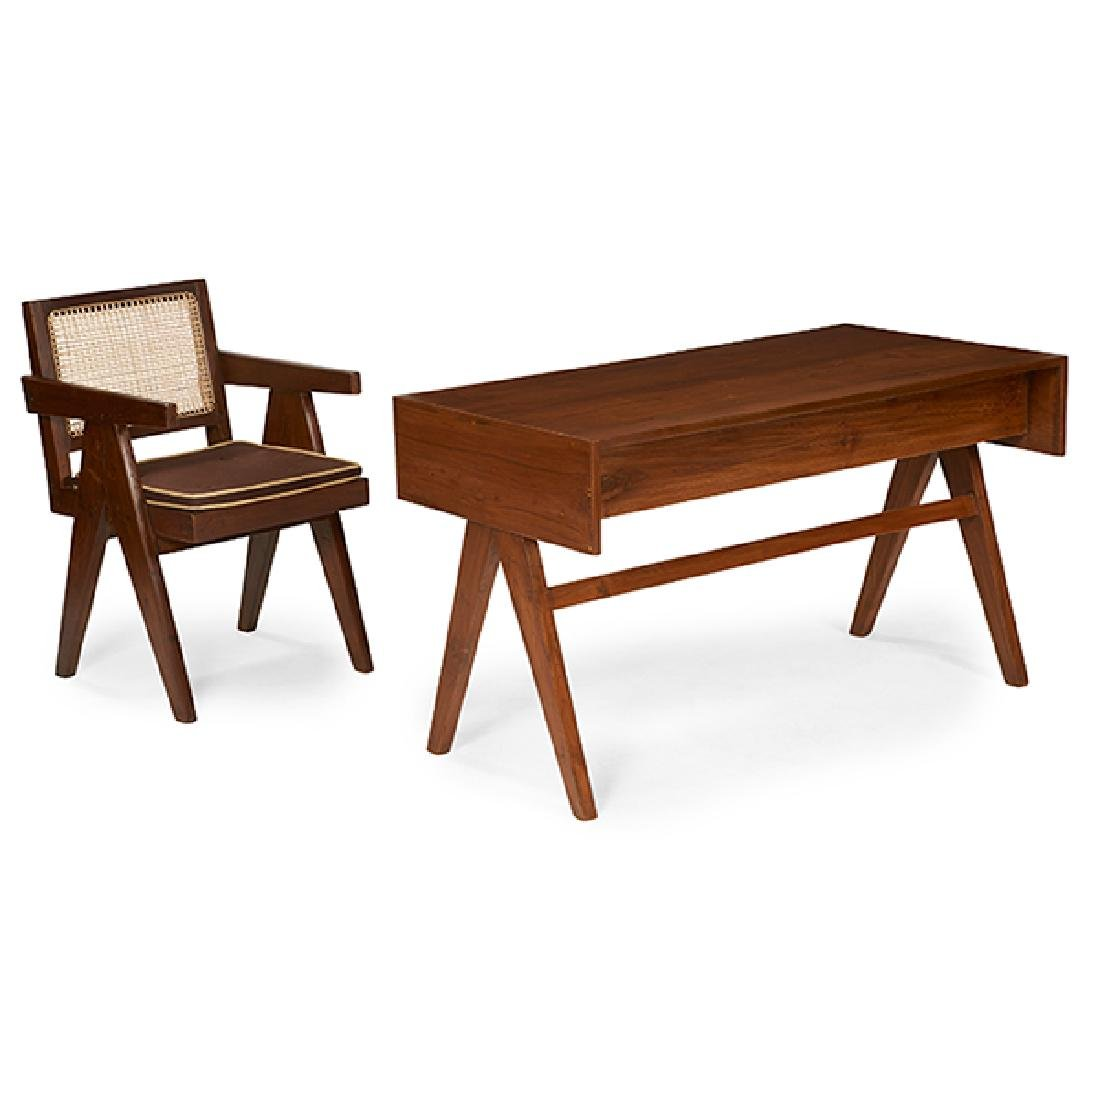 Pierre Jeanneret (1896-1967) Student desk, model